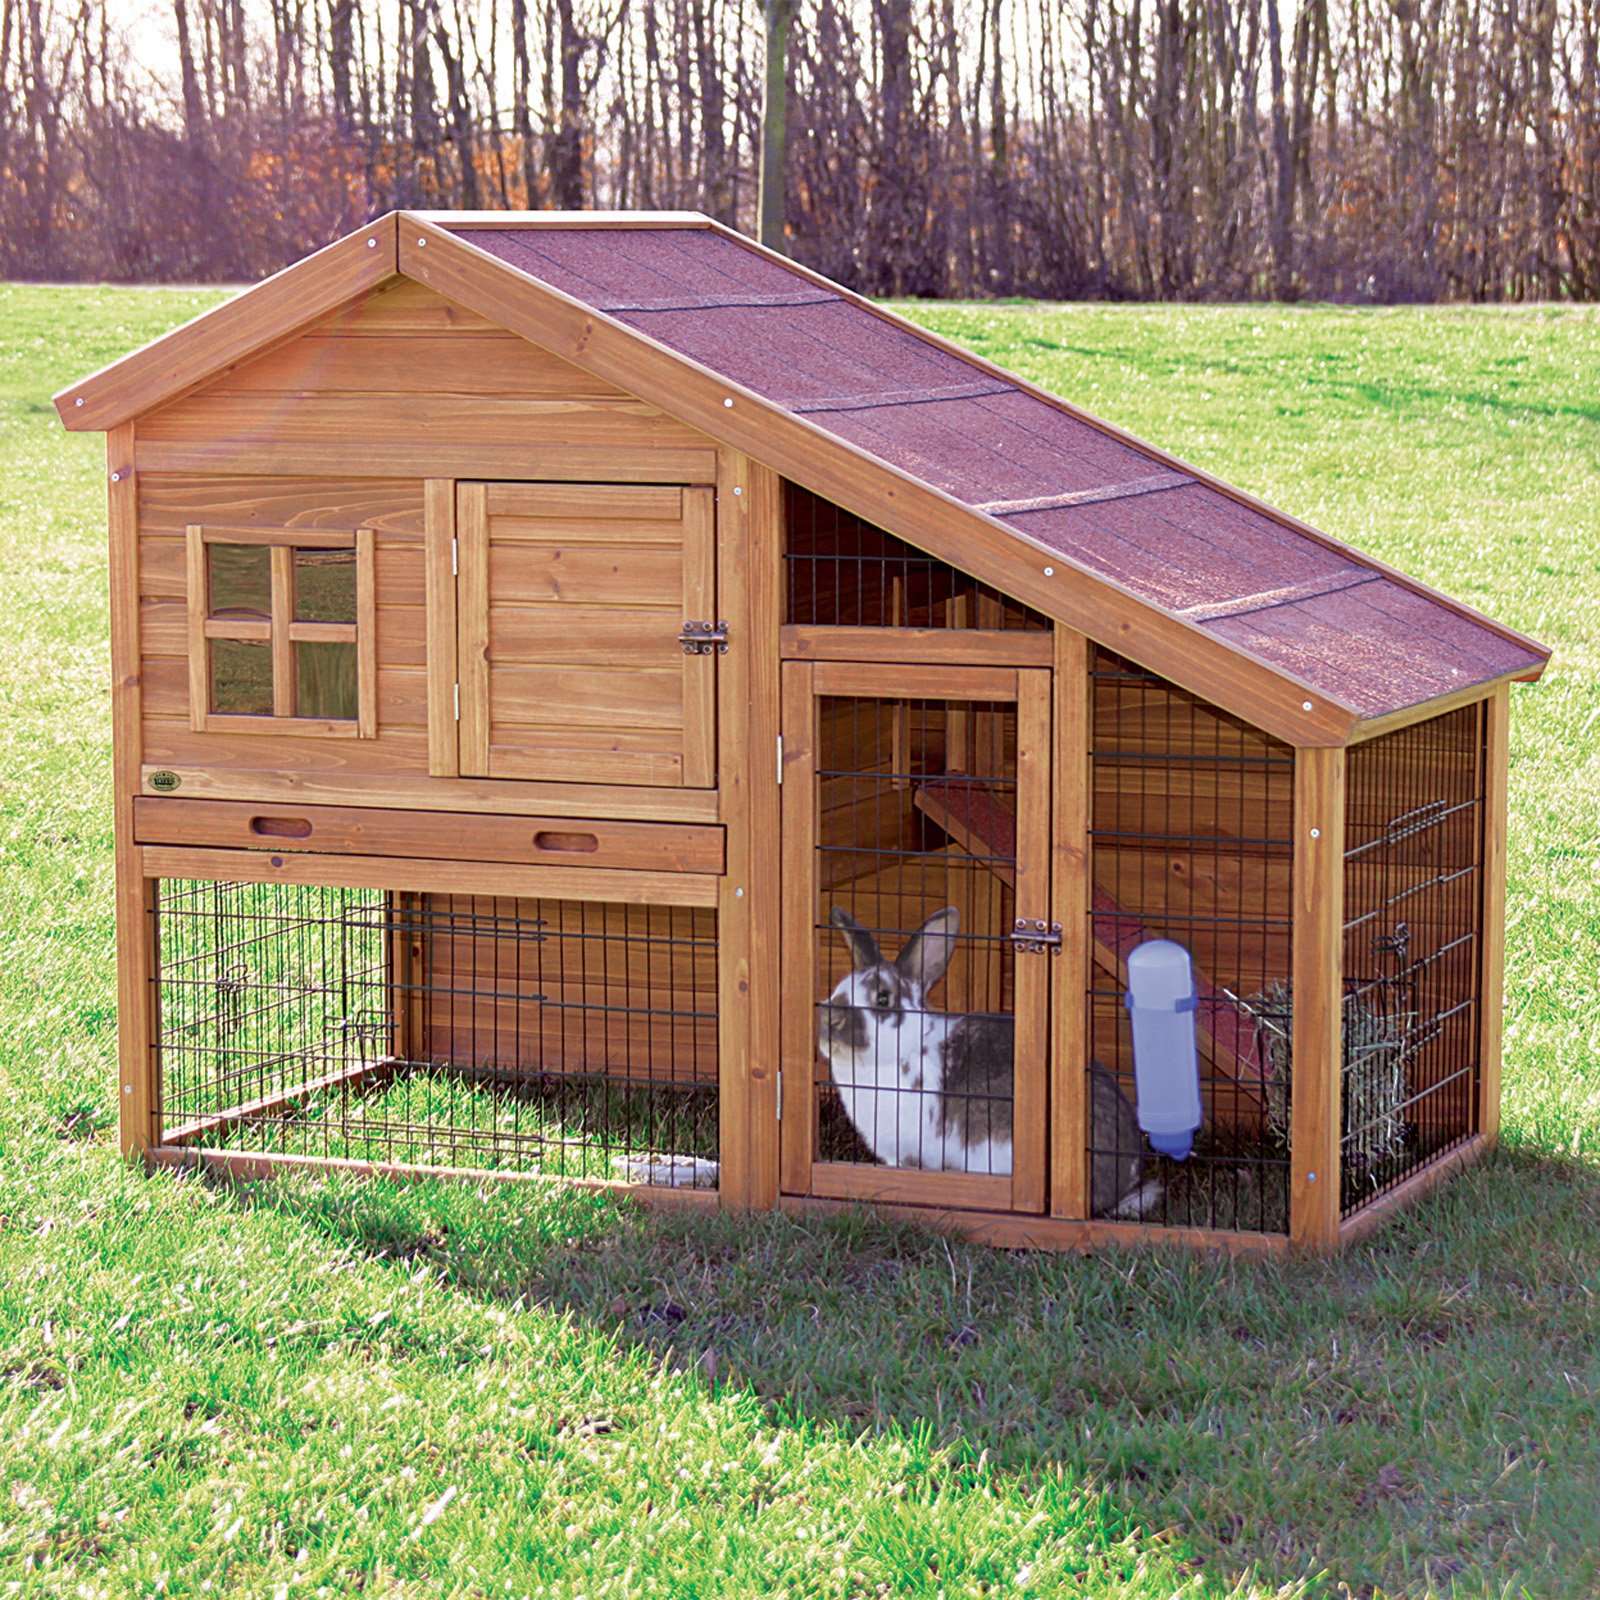 hd animals outdoor rabbit cages. Black Bedroom Furniture Sets. Home Design Ideas